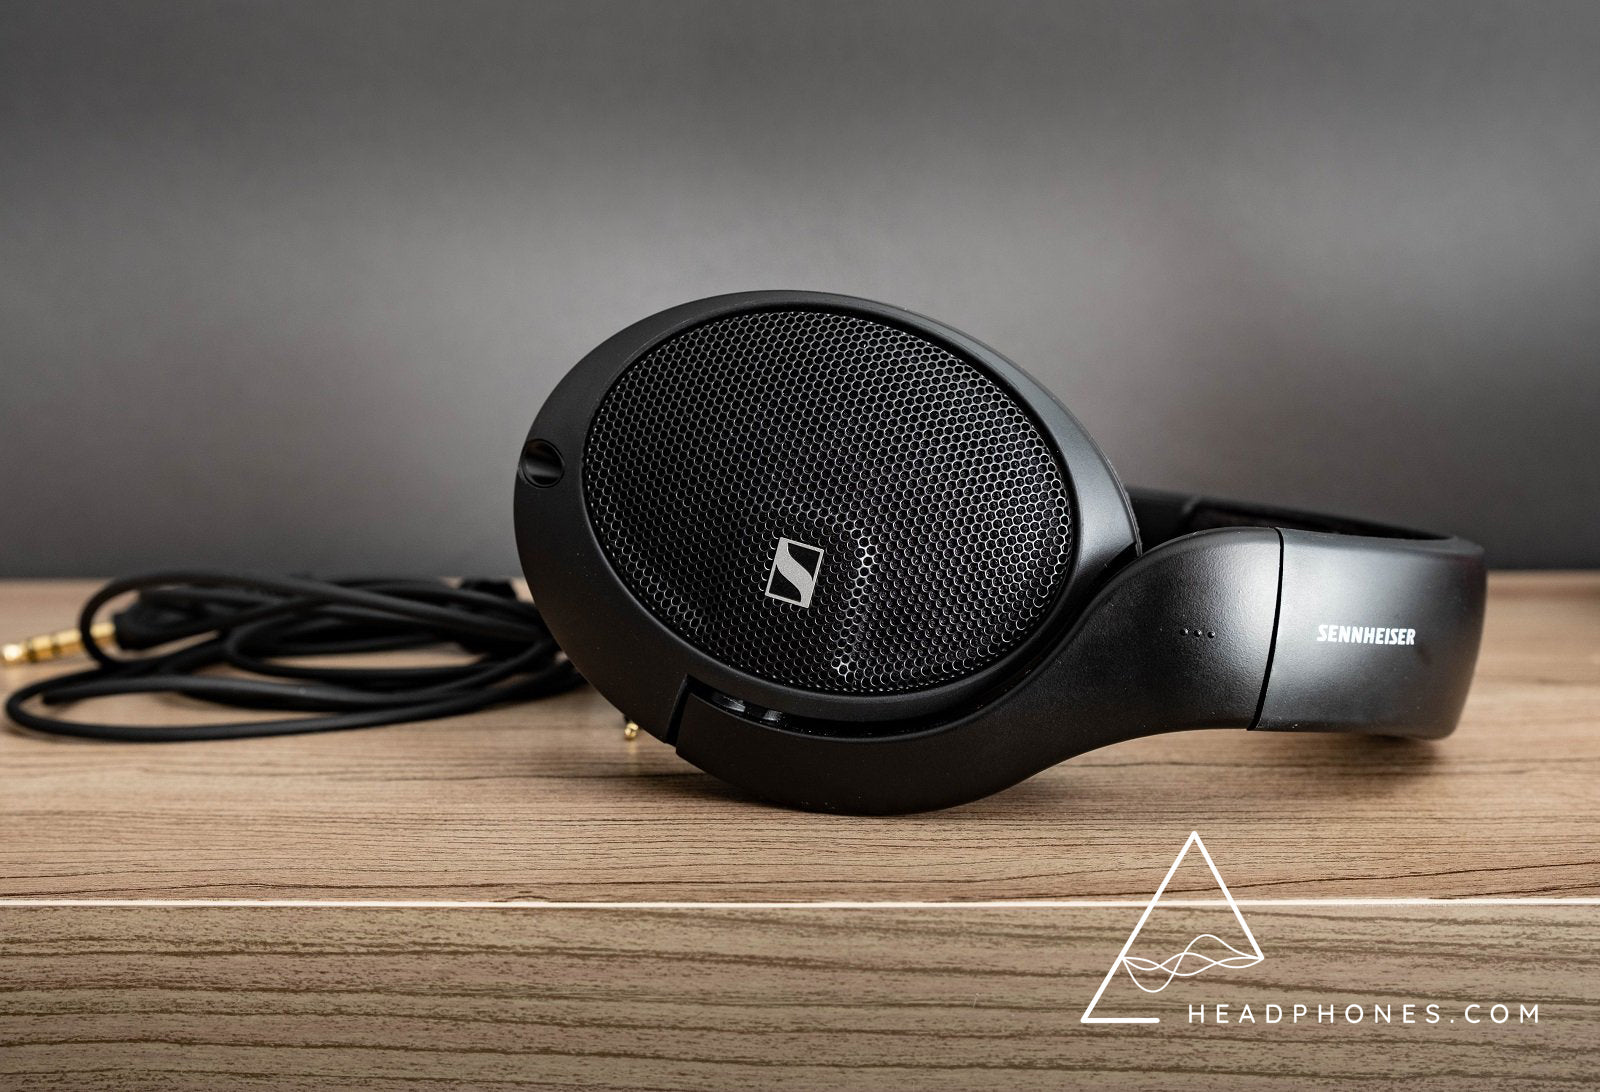 Sennheiser HD560S, best value dynamic driver reference headphones | headphones.com